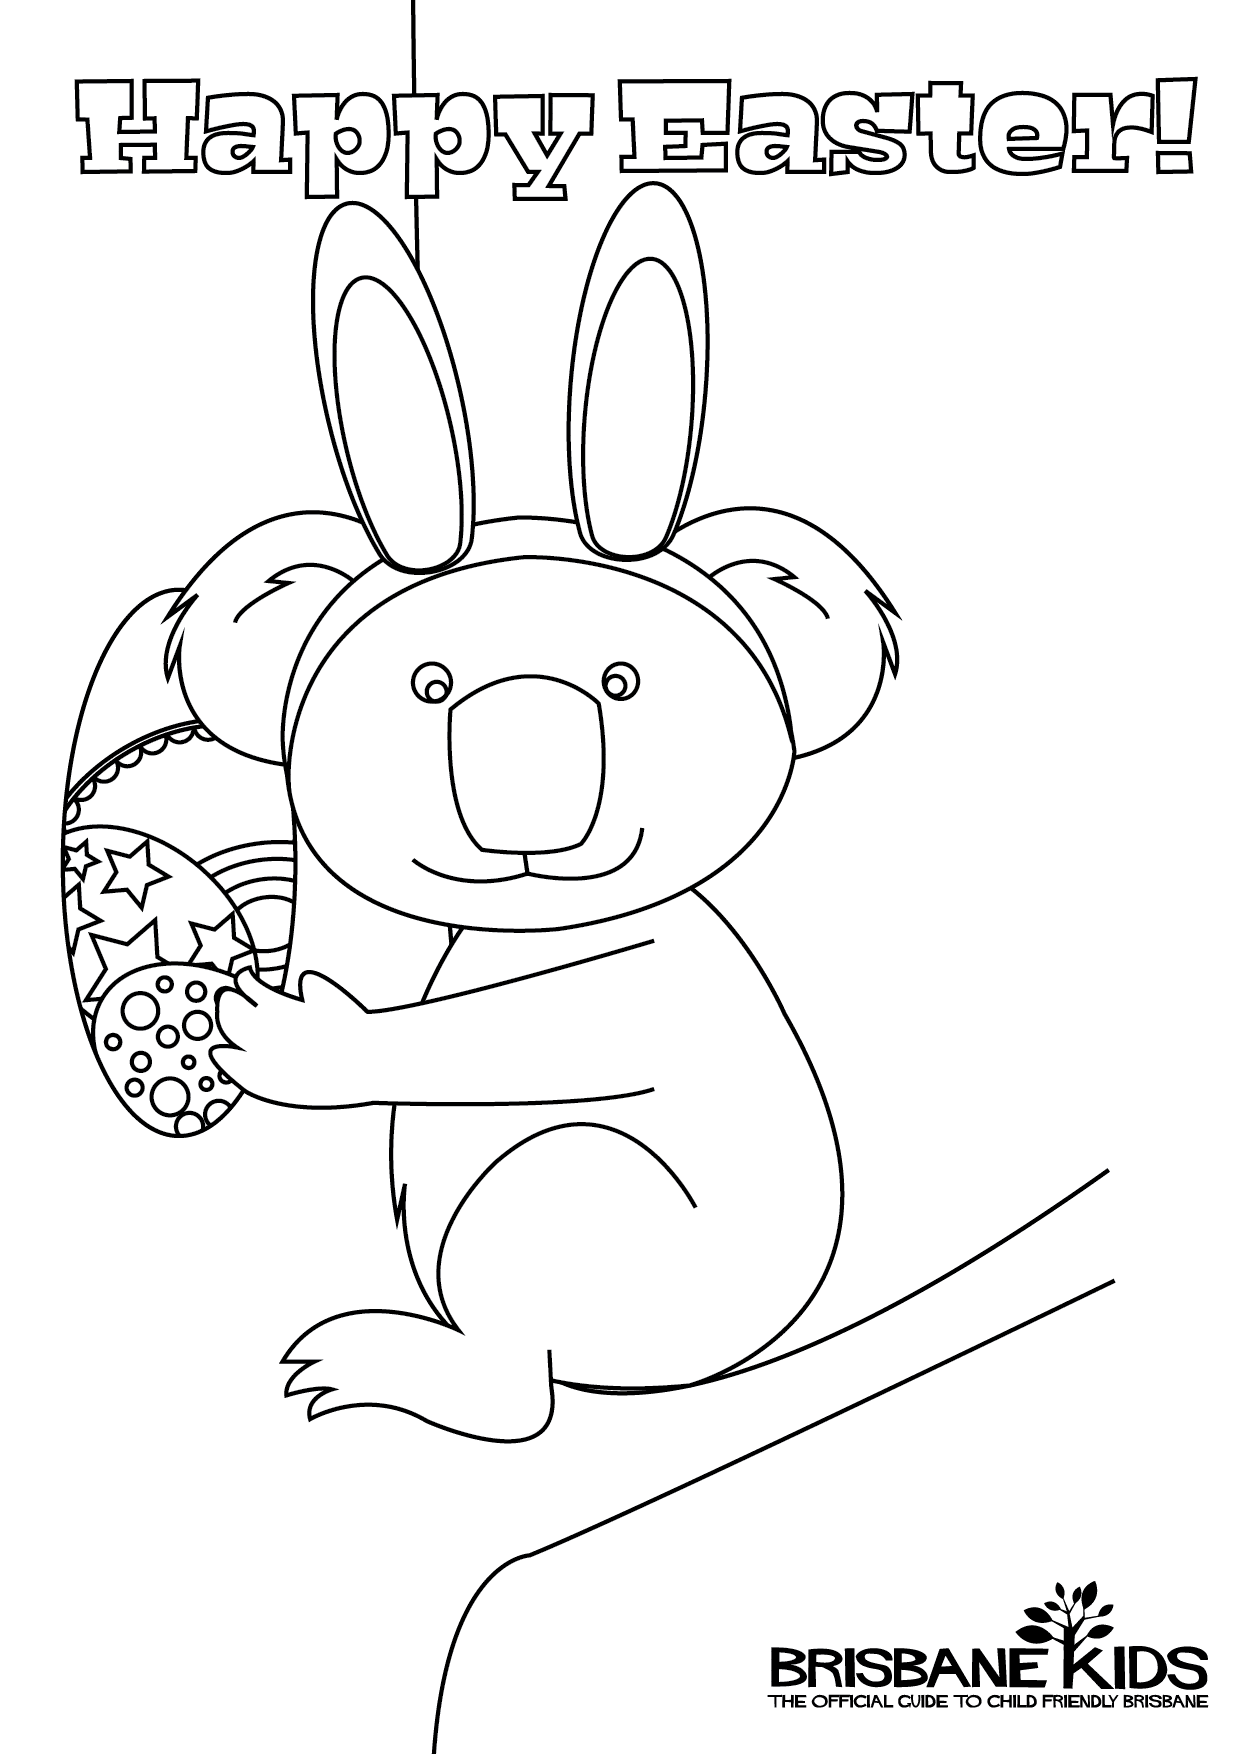 printable easter coloring pages happy easter eggs printable coloring pages for adults printable pages easter coloring